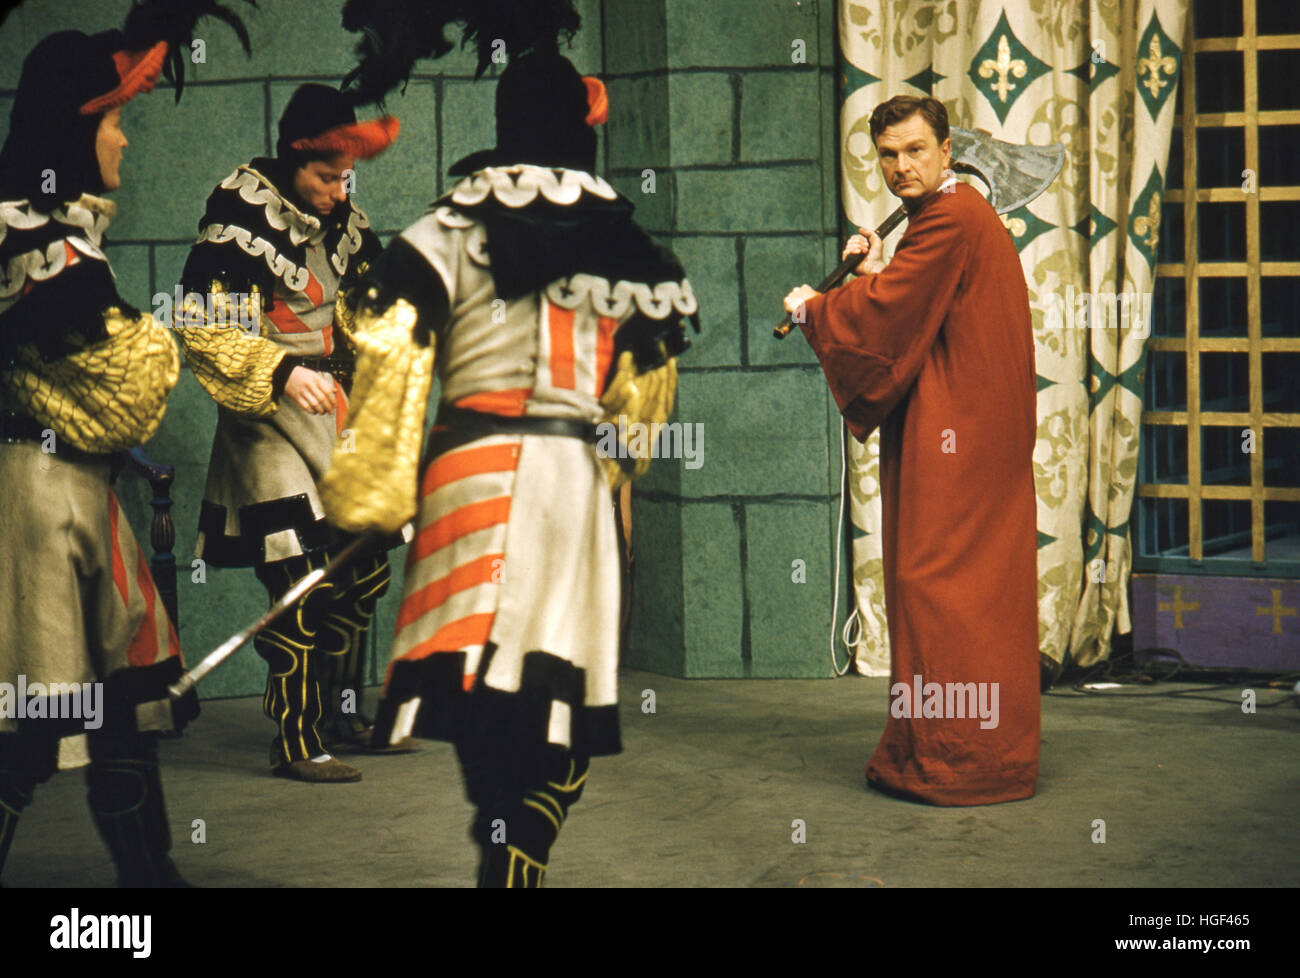 Eddie Albert in the 1955 production of A Connecticut Yankee in King Arthur's Court by Max Liebman. - Stock Image